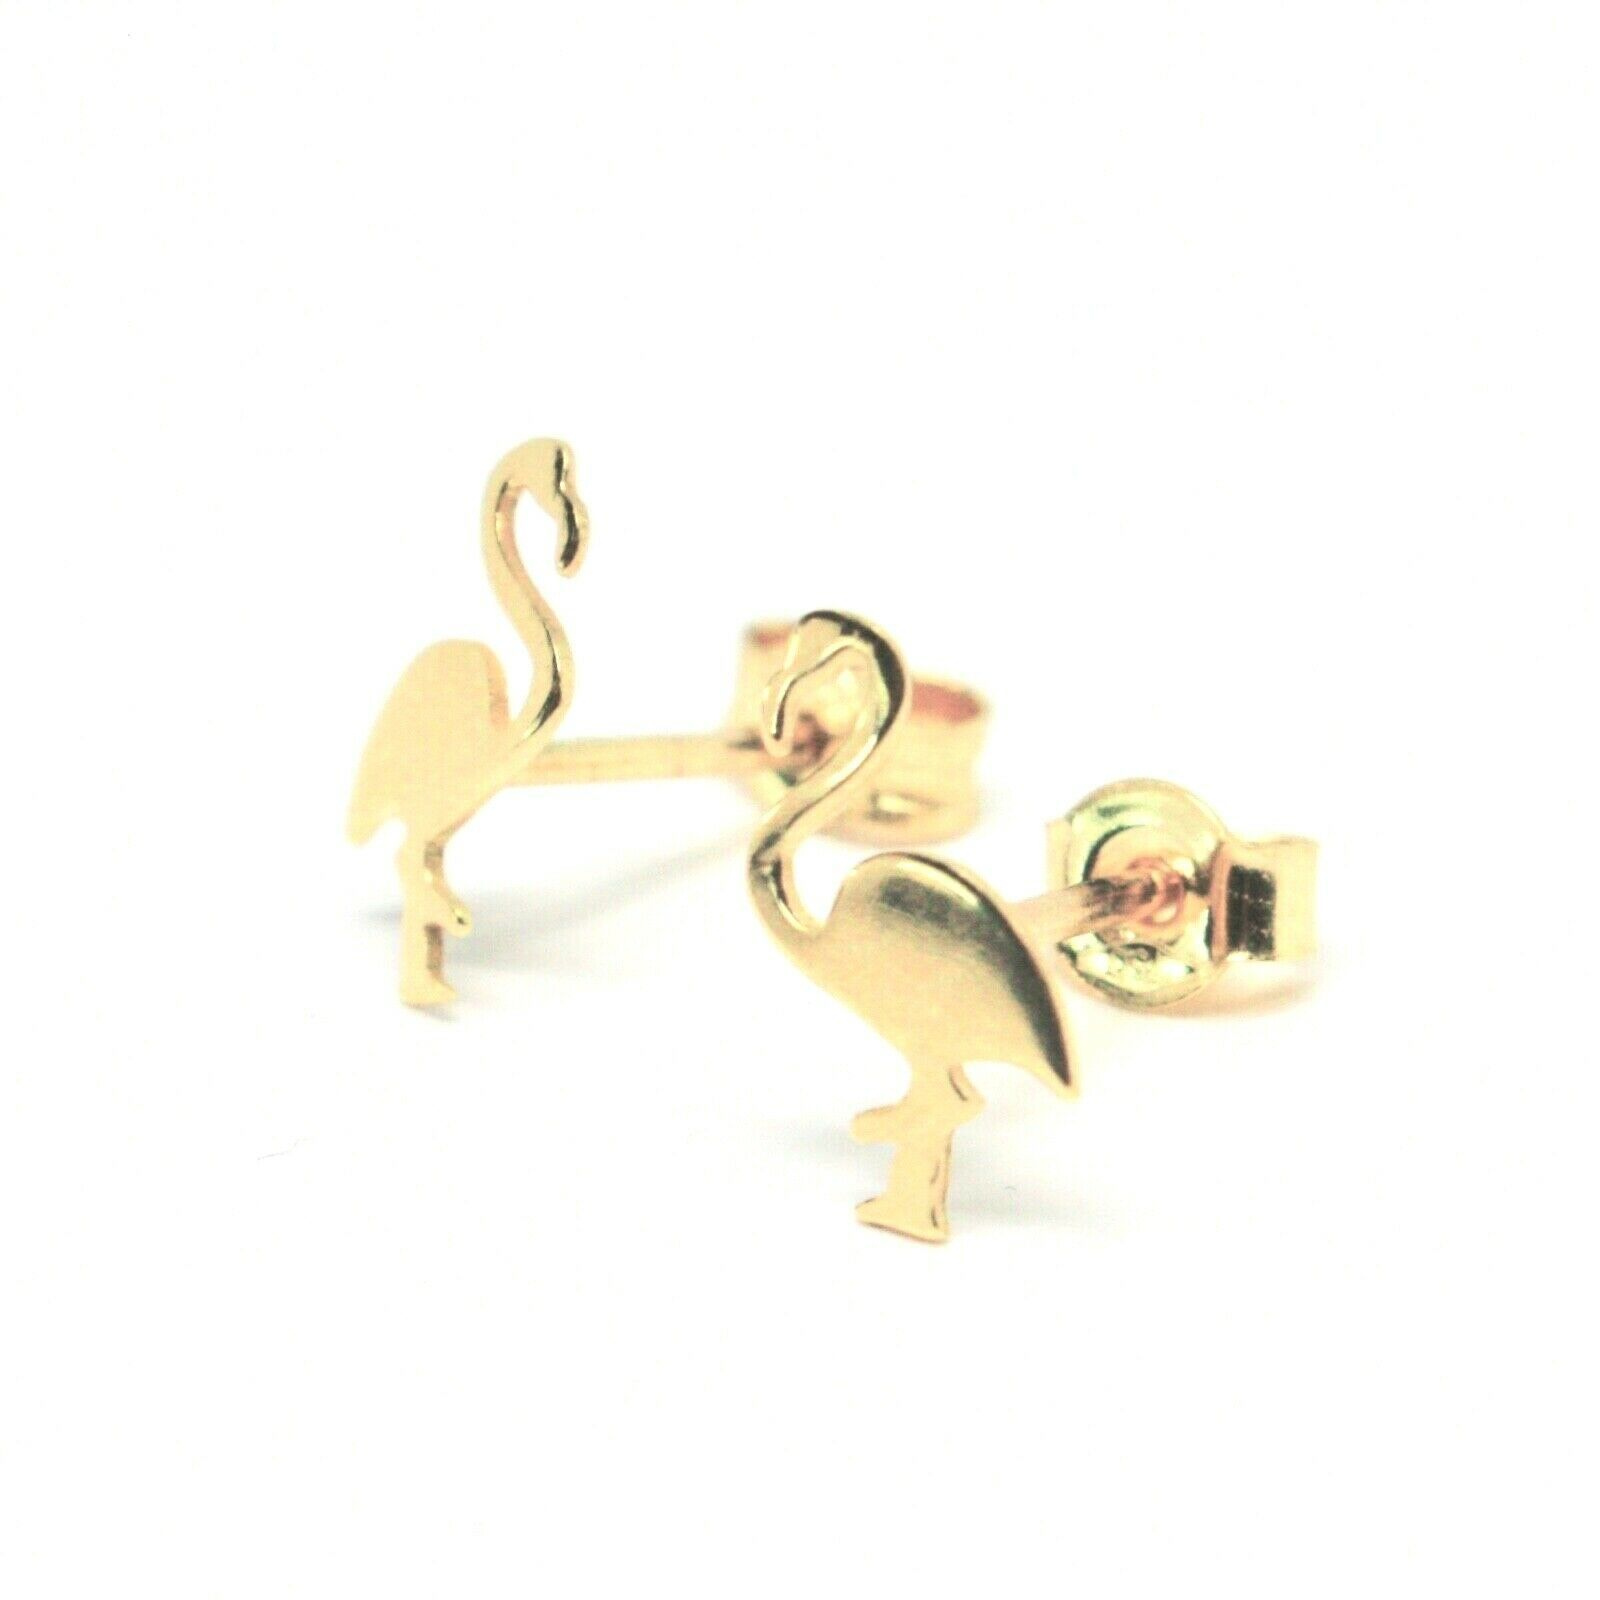 GOLD EARRINGS 18K 750 SHAPED FLAMINGO SLAB GLOSSY MADE IN ITALY